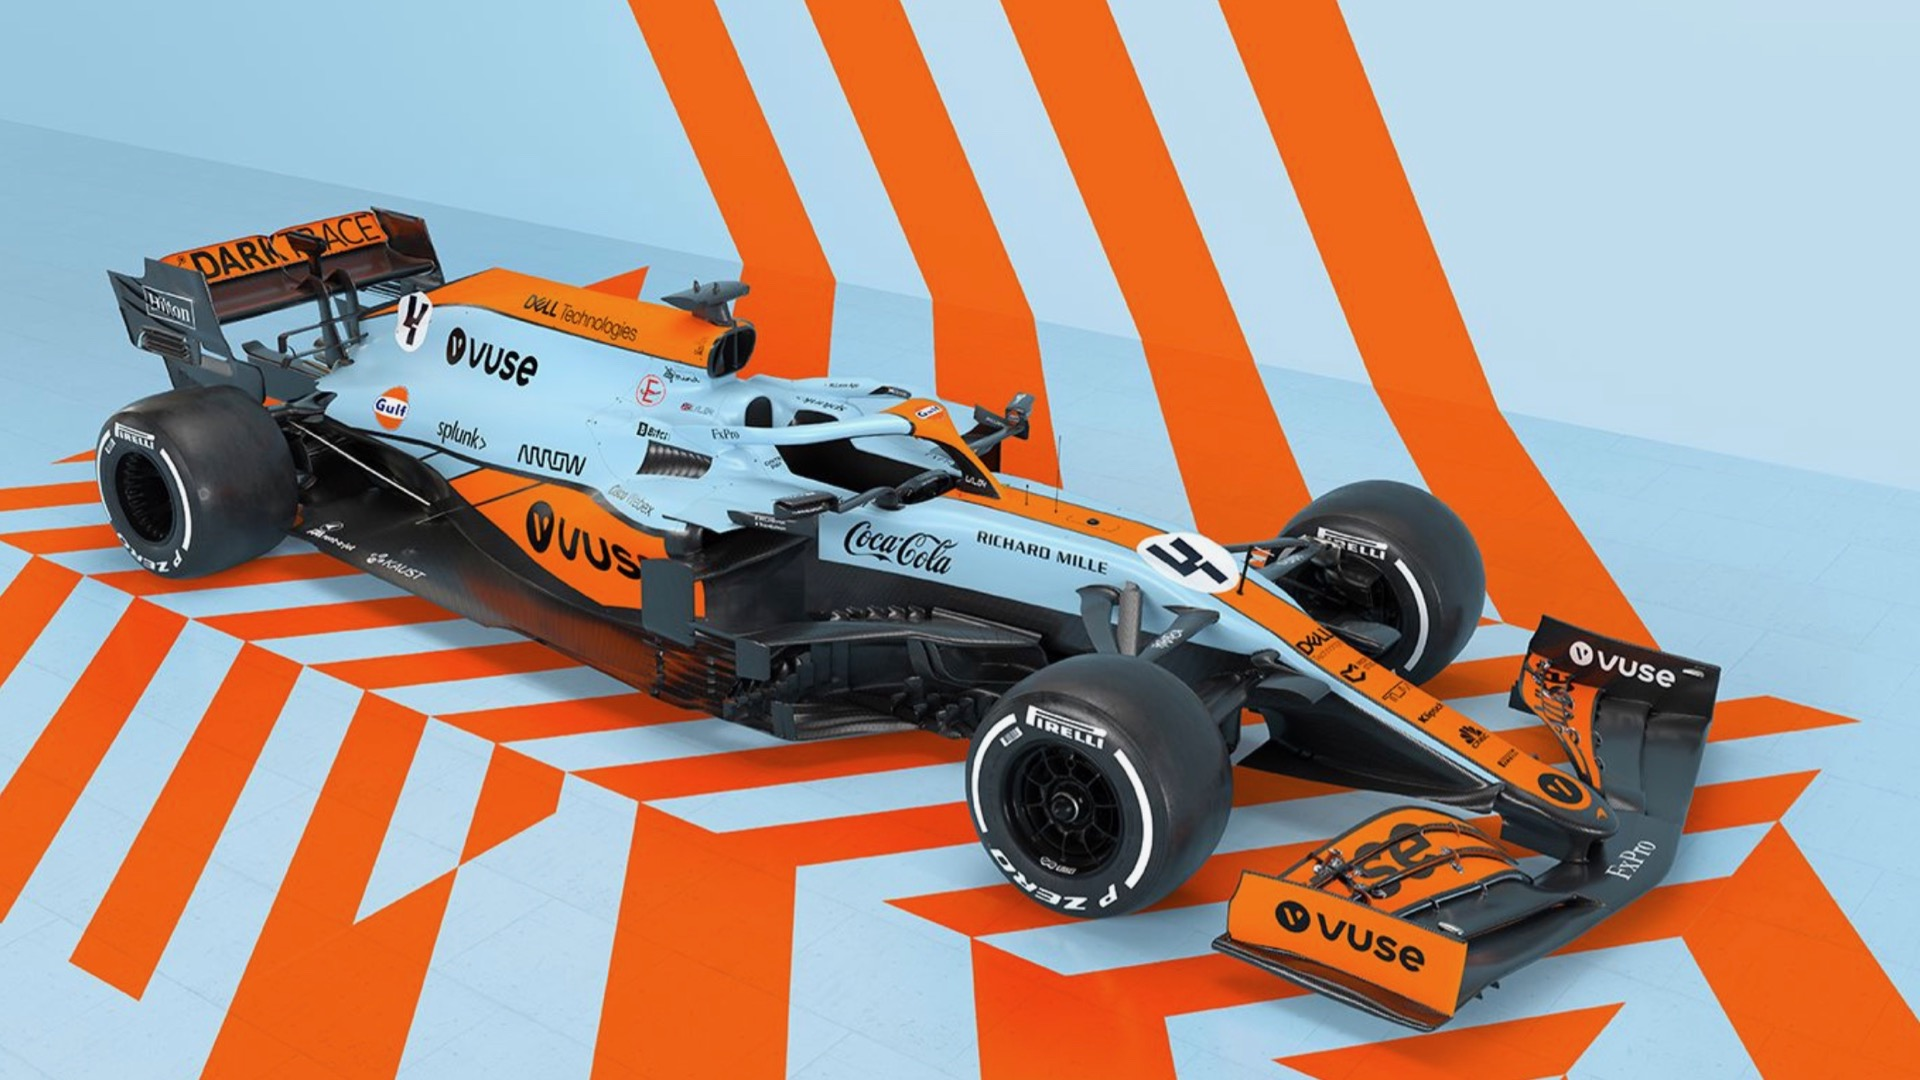 McLaren Formula One team to run Gulf Livery in Monaco